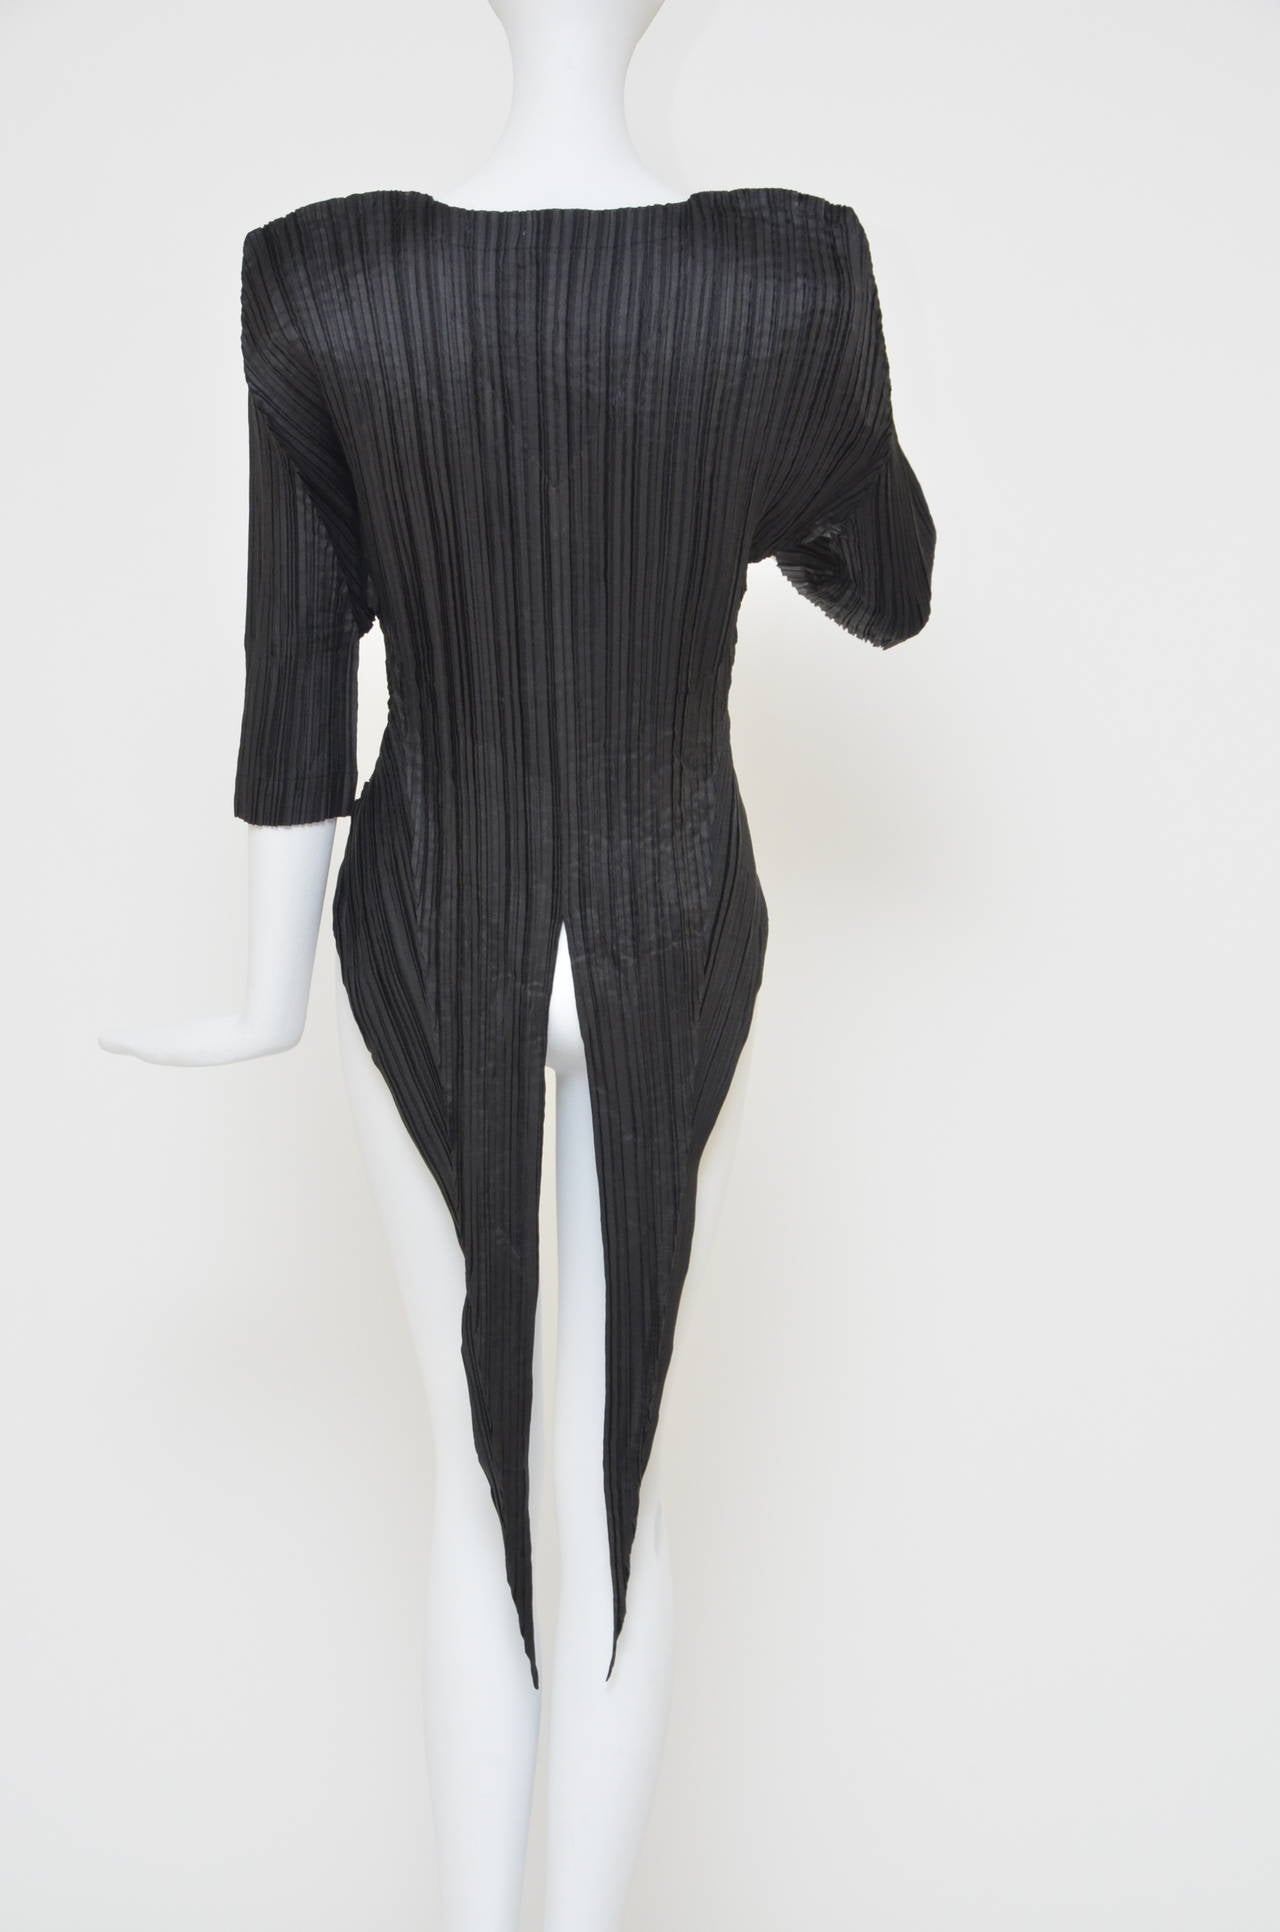 This is a very early example of the fabric pleating technique  Issey Miyake  originated in the late 1980s, and recently featured in the exhibition